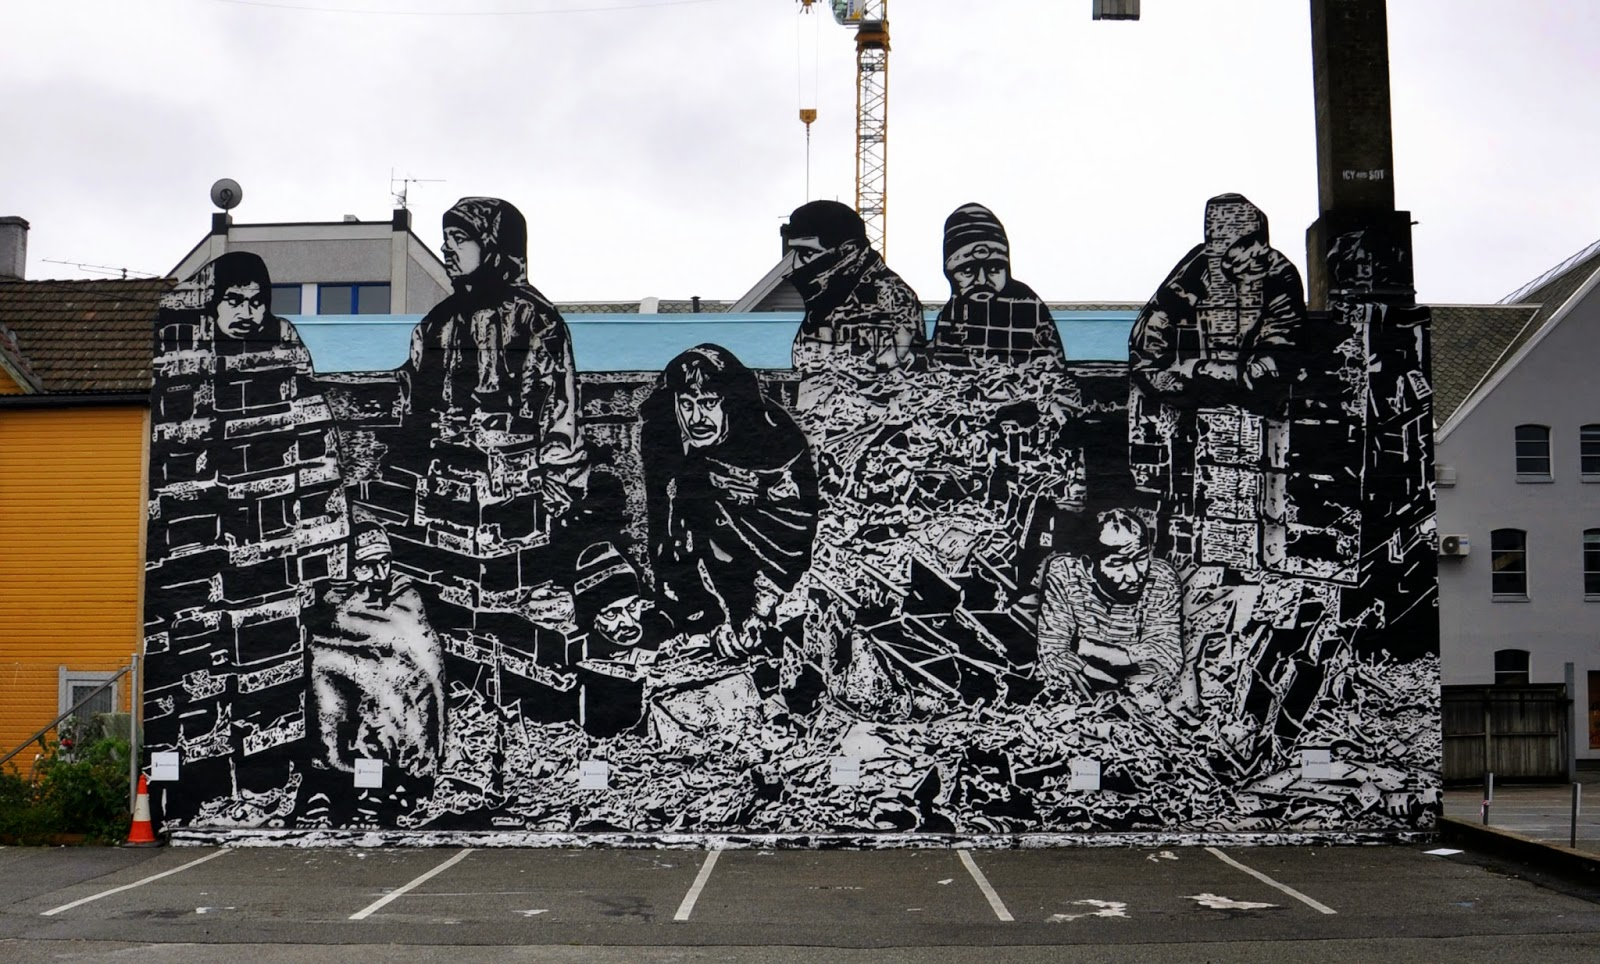 NYC-based Iranian duo Icy & Sot were also part of the excellent Nuart Festival where they worked on this new piece on the streets of Stavanger in Norway.